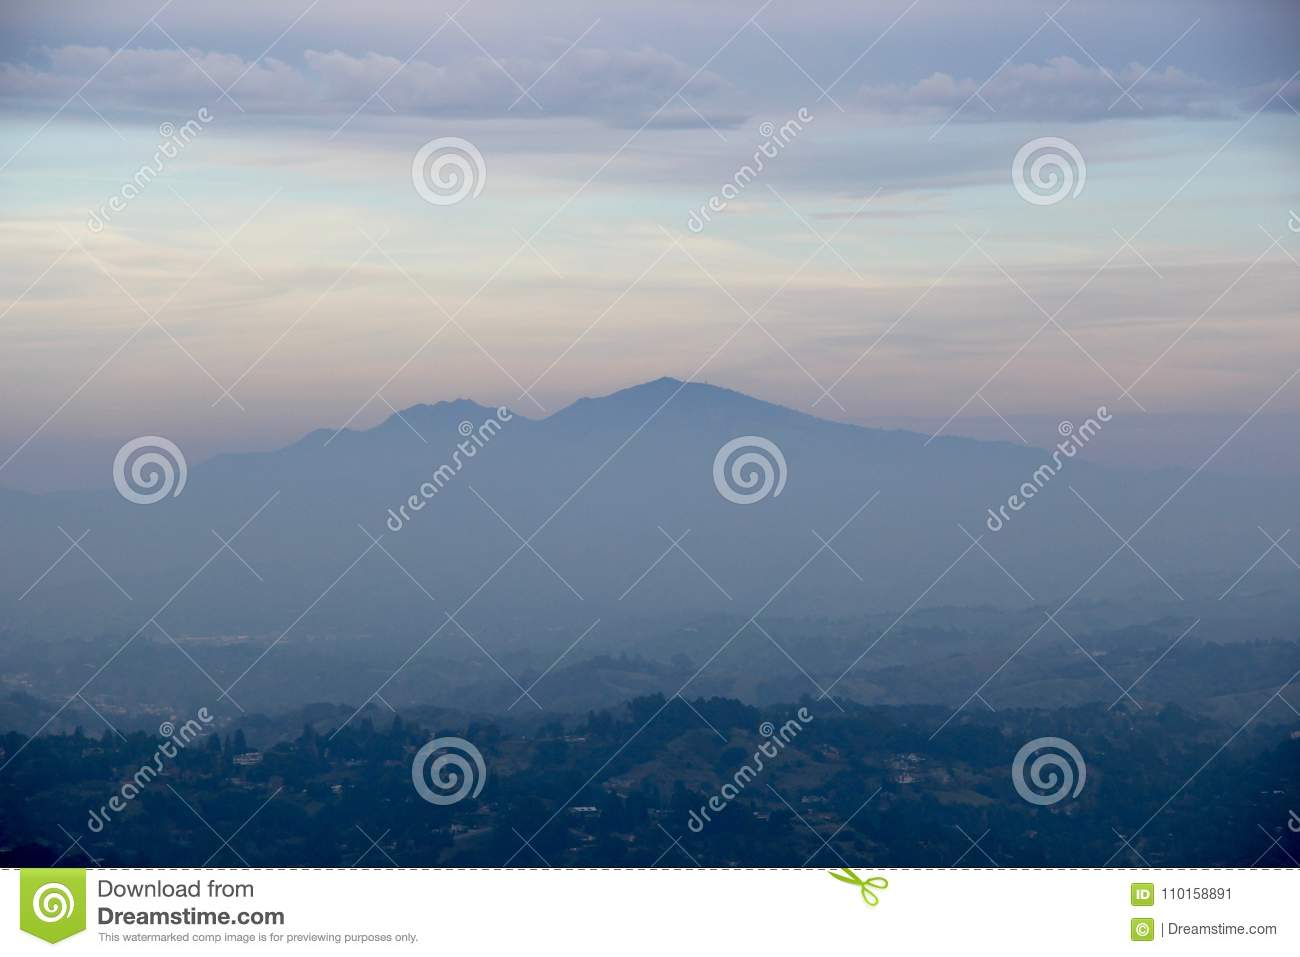 A mountain peak in the distance